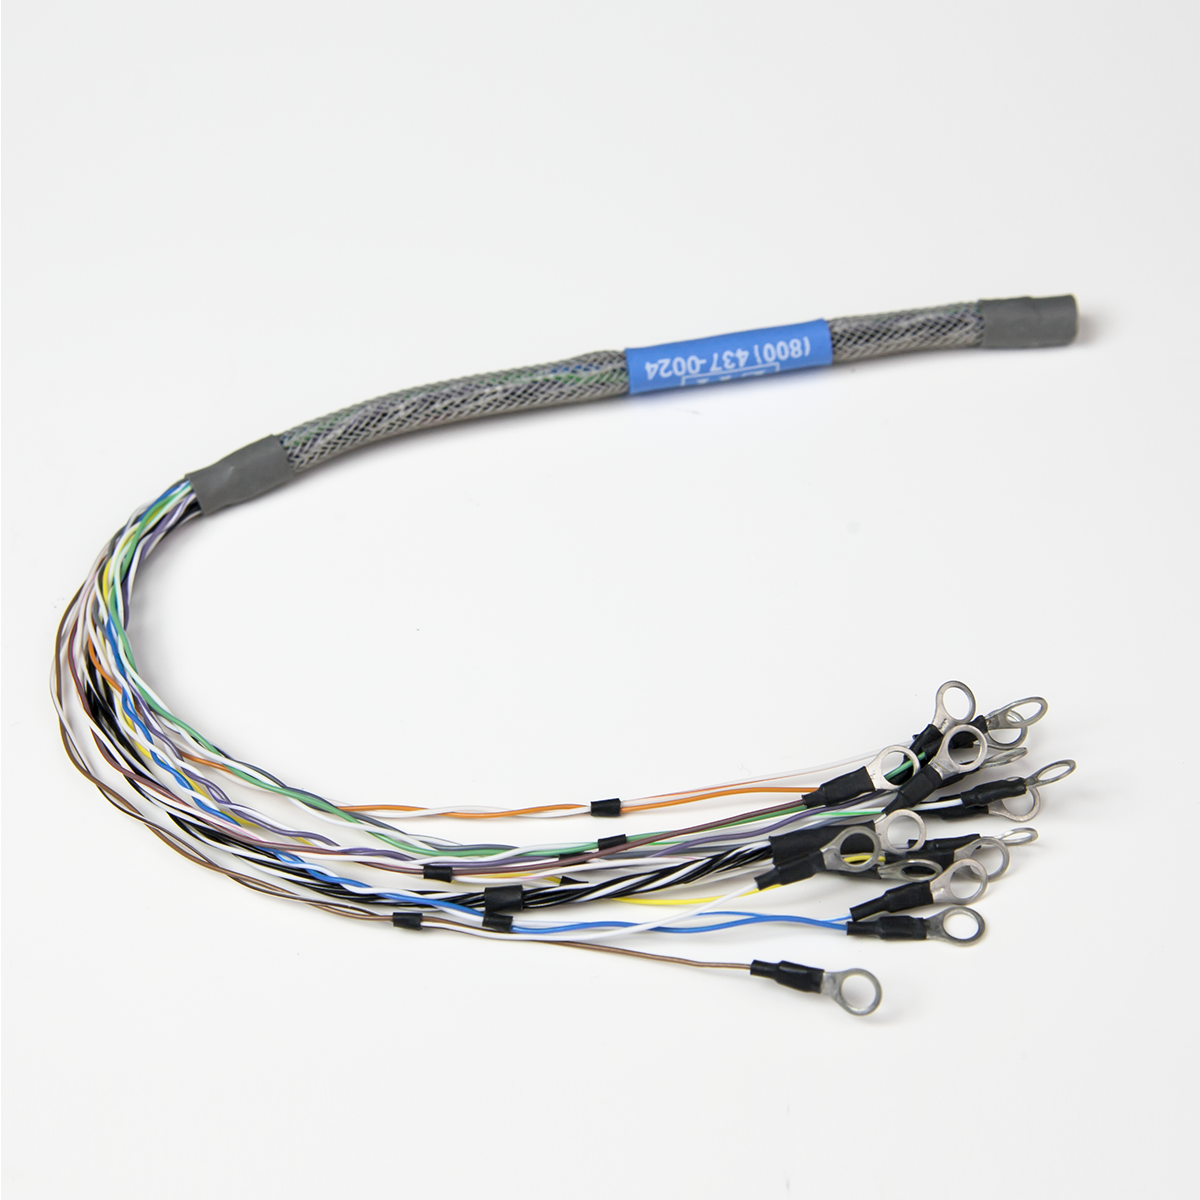 8-Channel EMG Electrode Leads Cable Style:Snaps by COAPT